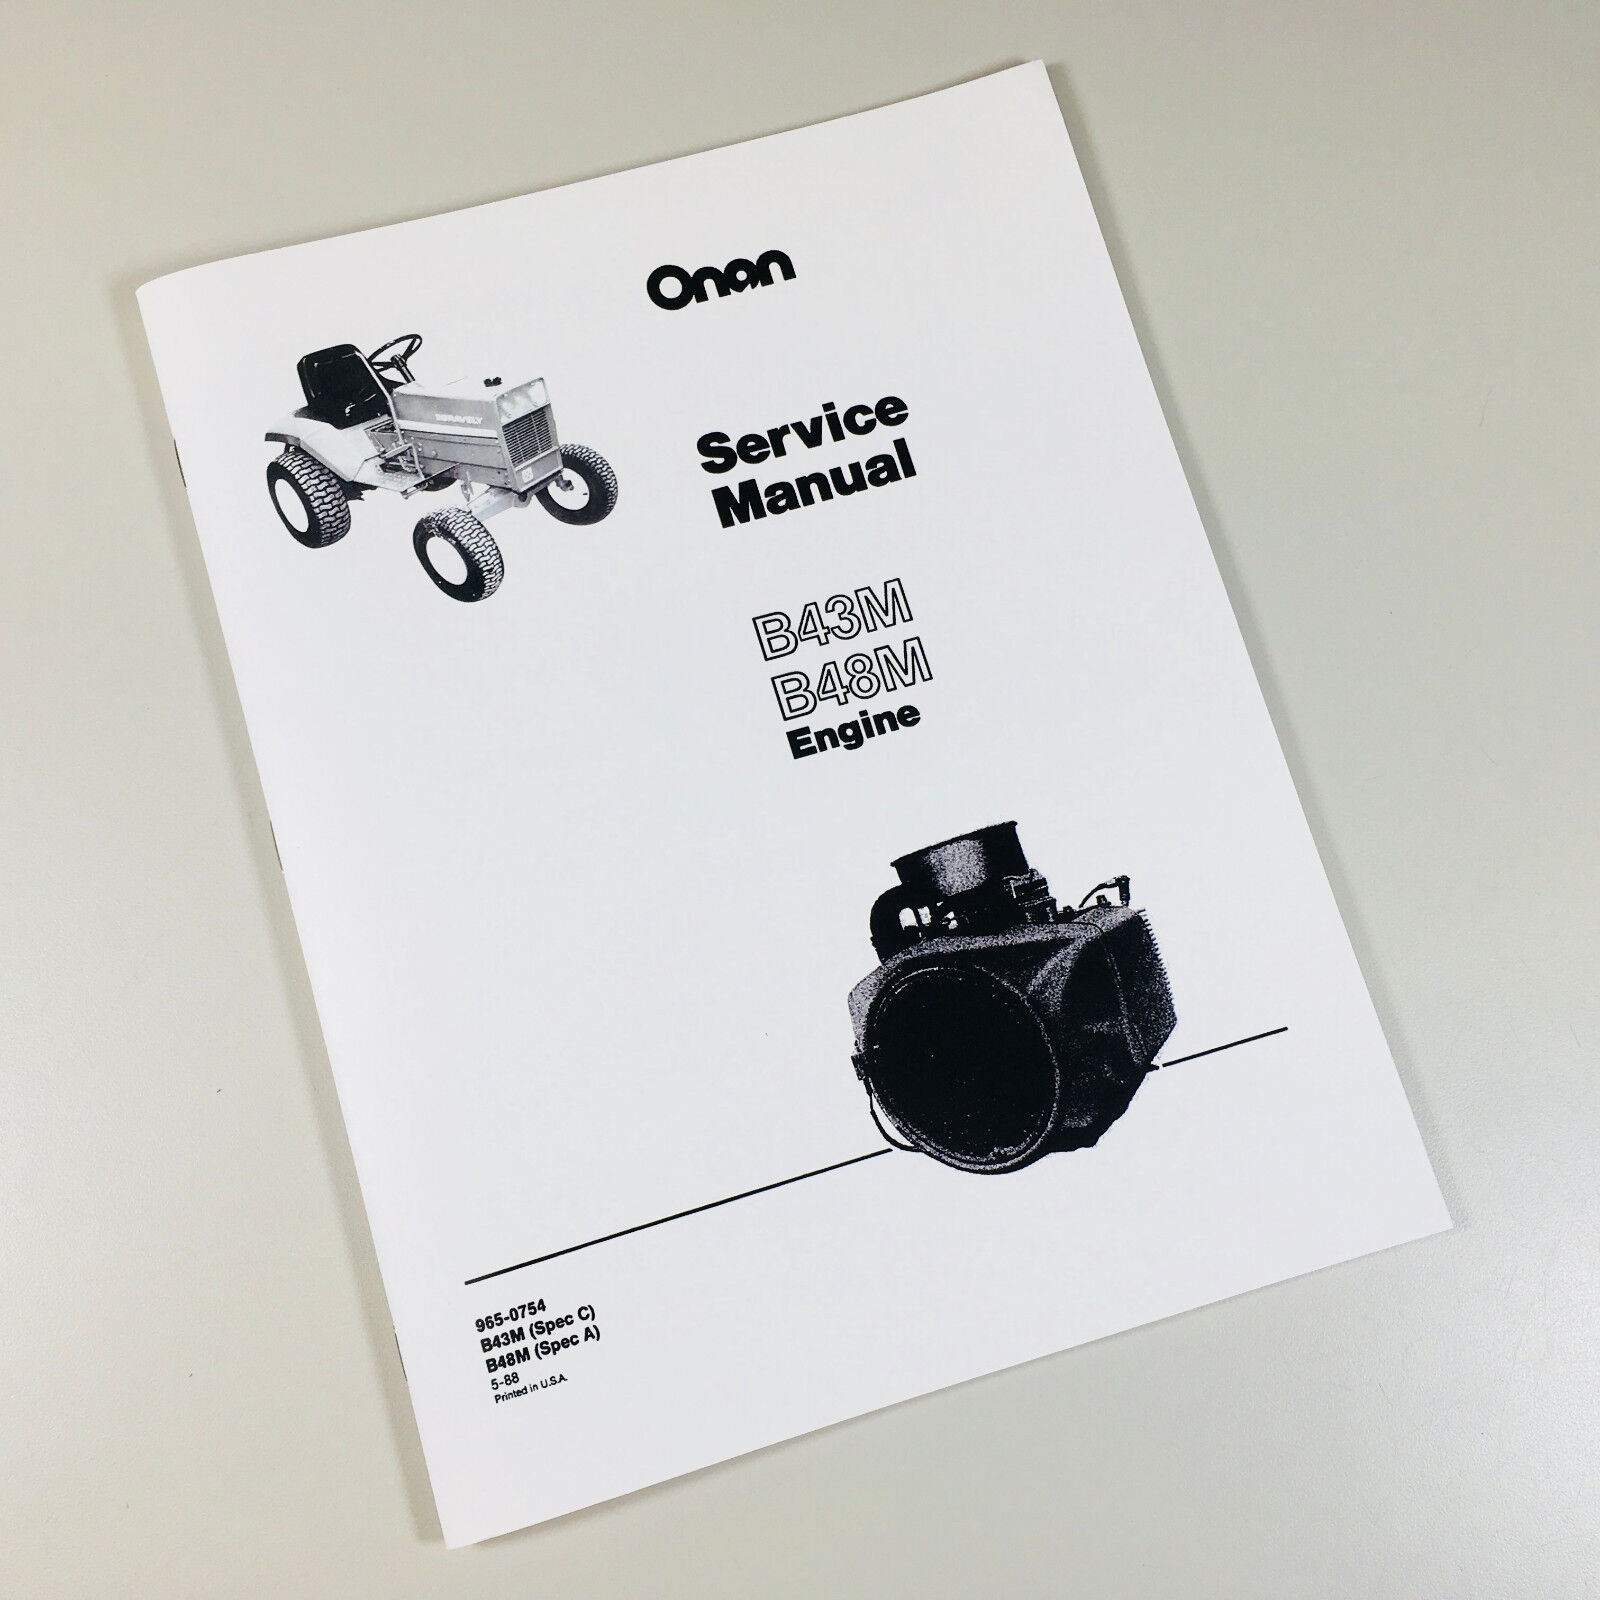 Case 446 Garden Tractor Manual One Word Quickstart Guide Book Ingersoll Wiring Diagram Compact Onan B43m 16hp Engine Service Repair Rh Picclick Com